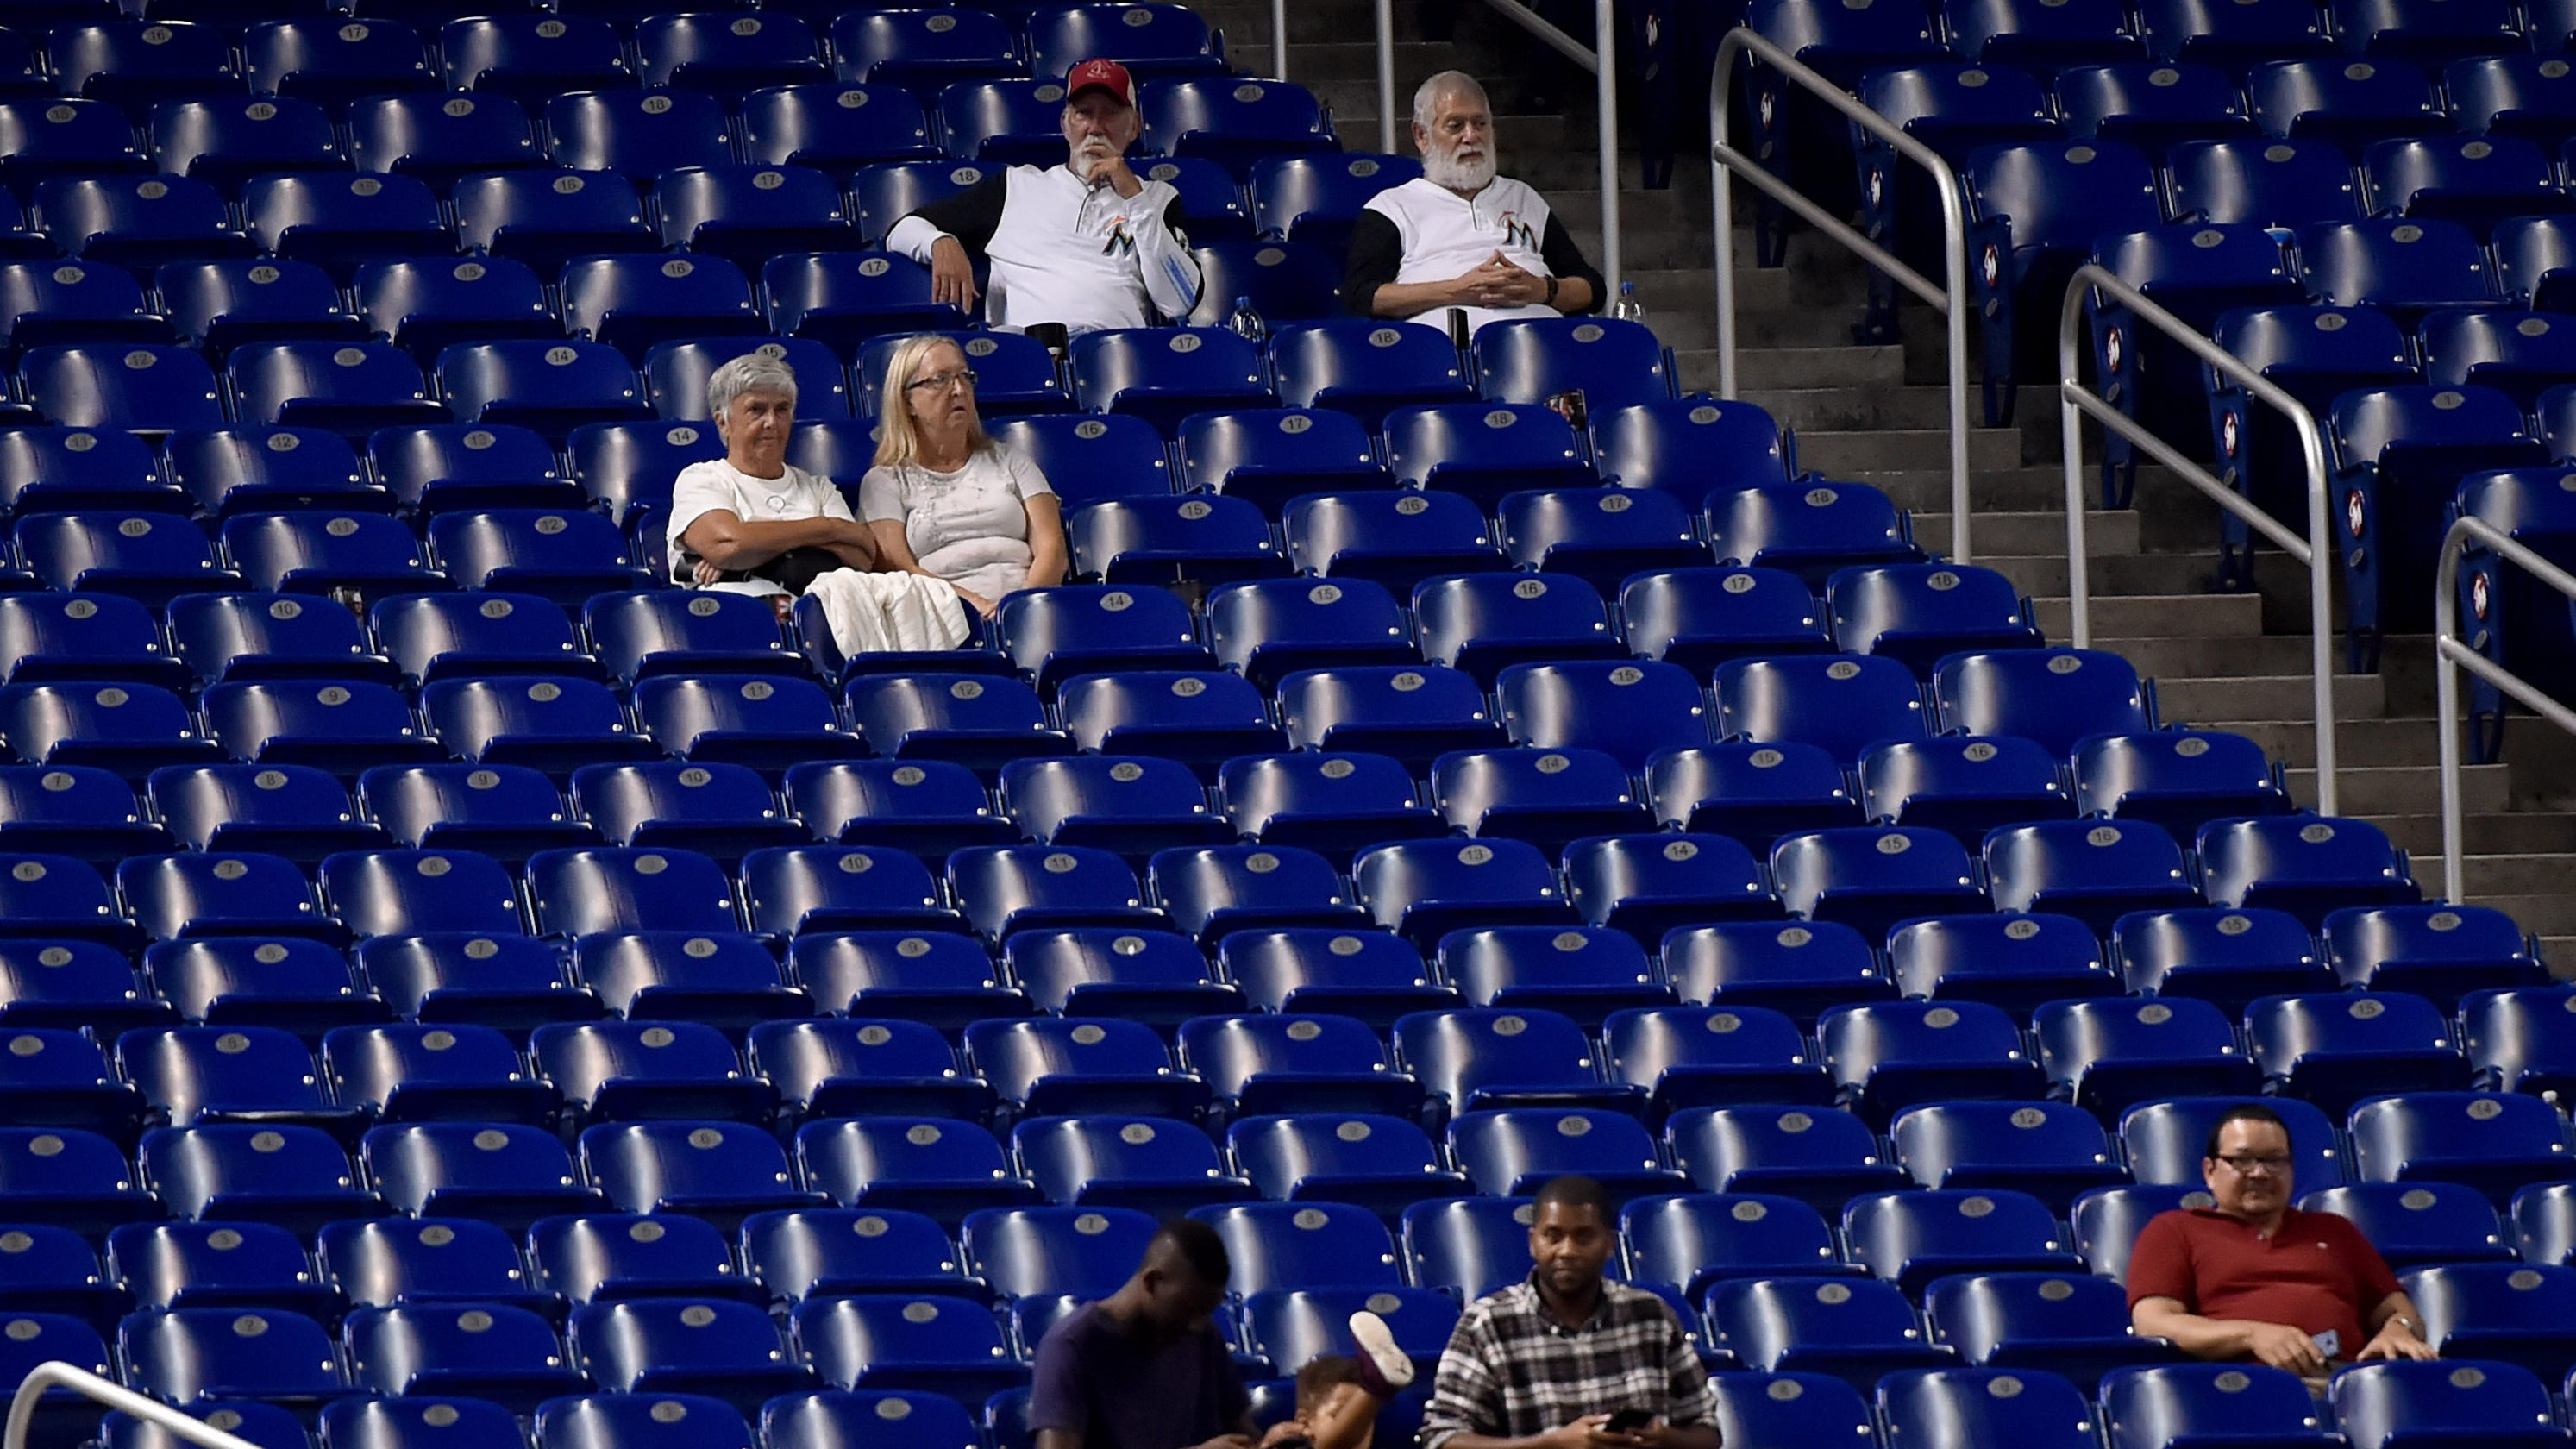 bb0d0815a Miami Marlins lowering season-ticket prices for 2019   We screwed up